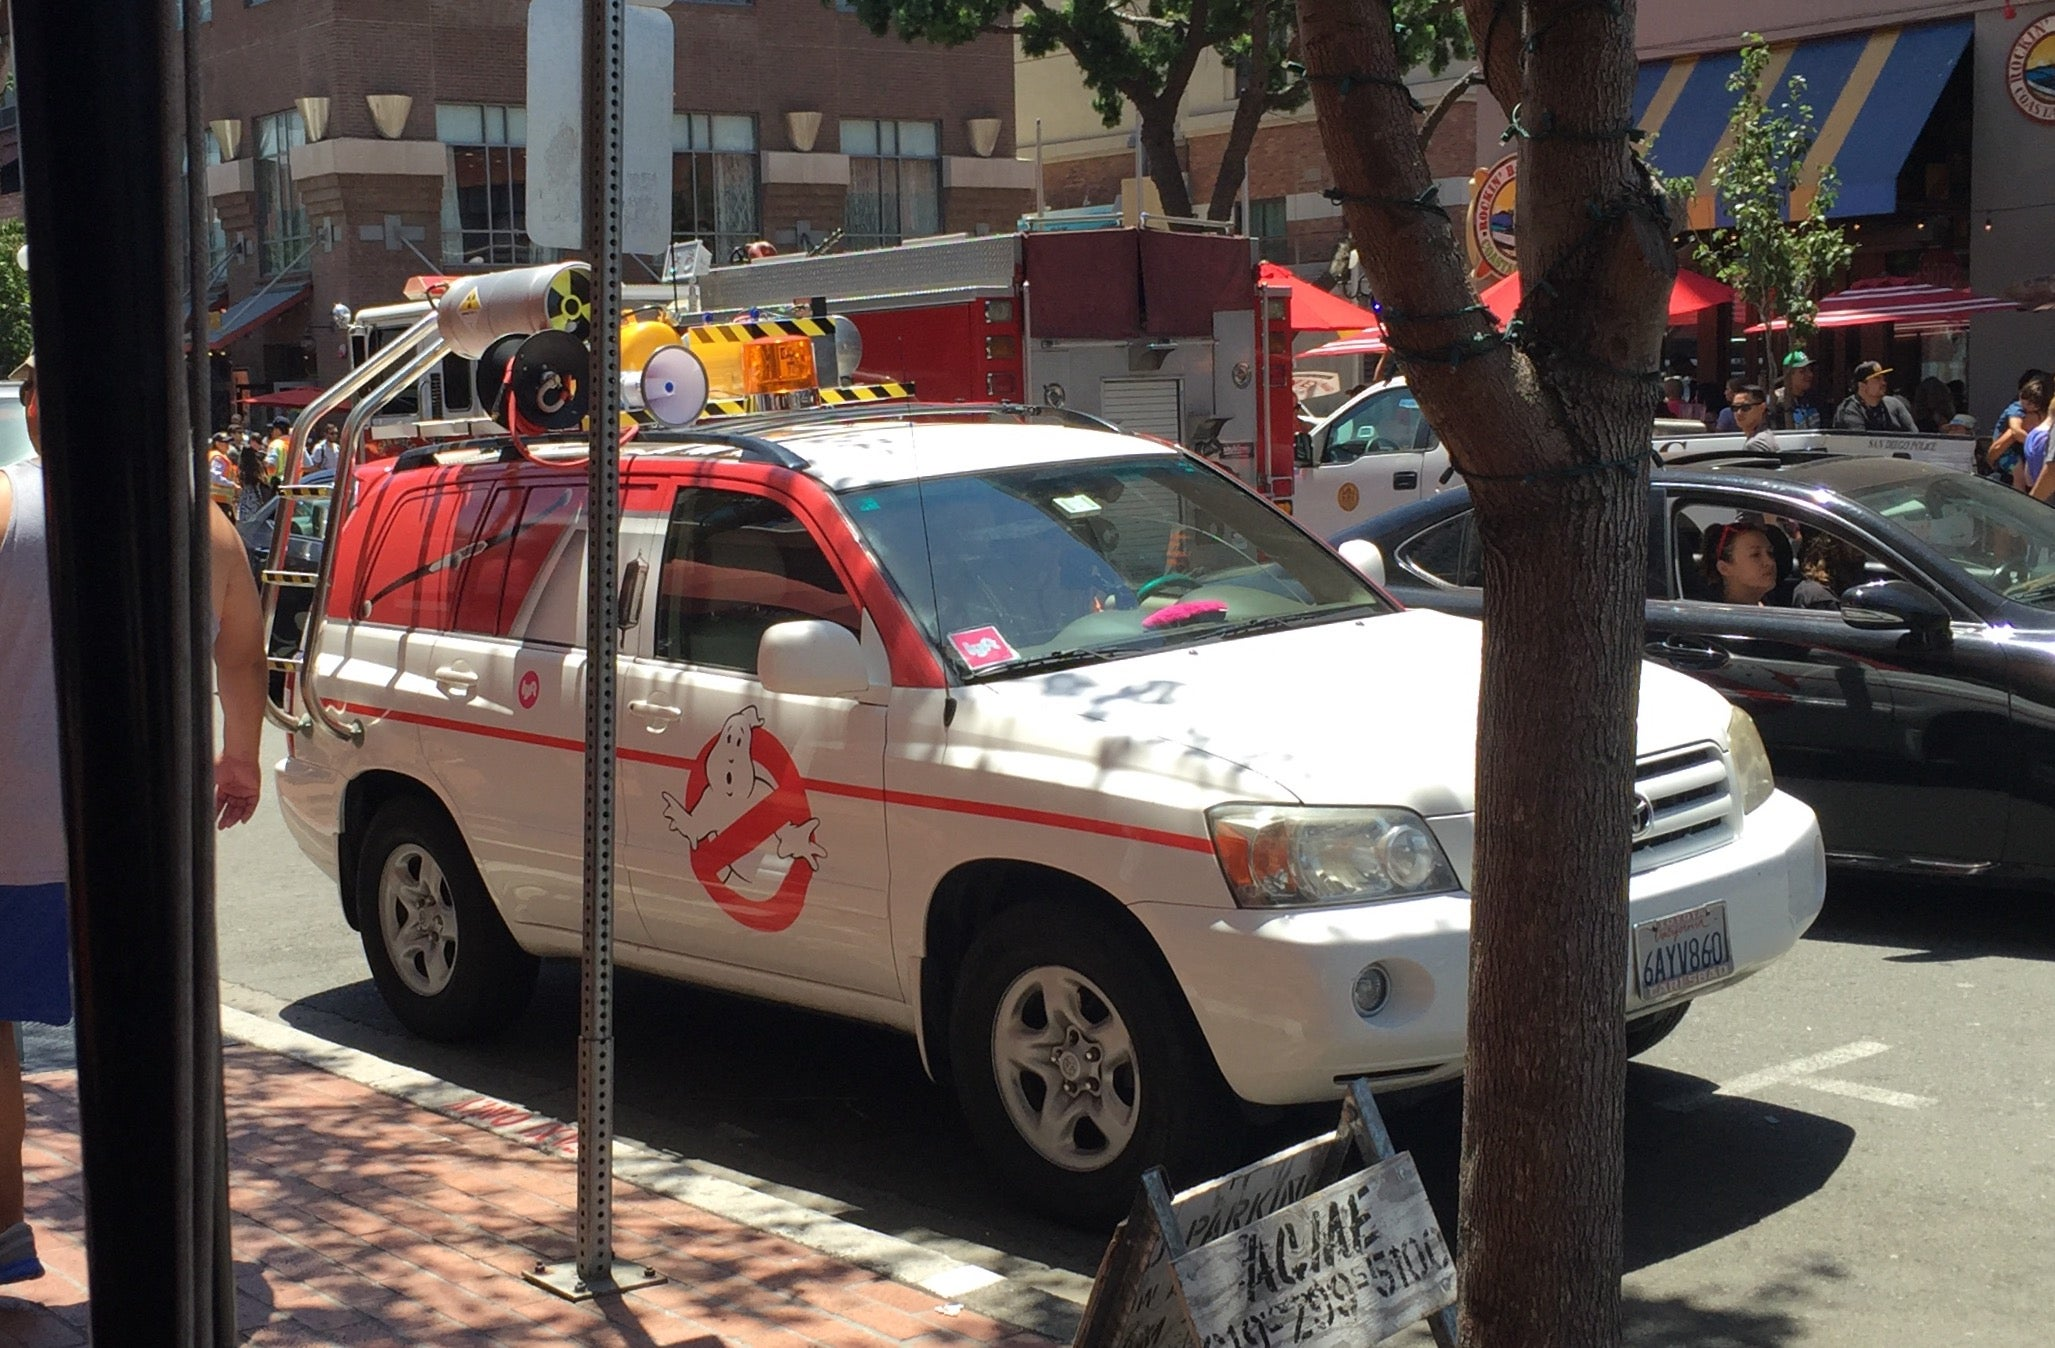 ghostbusters lyft ride at san diego comic con